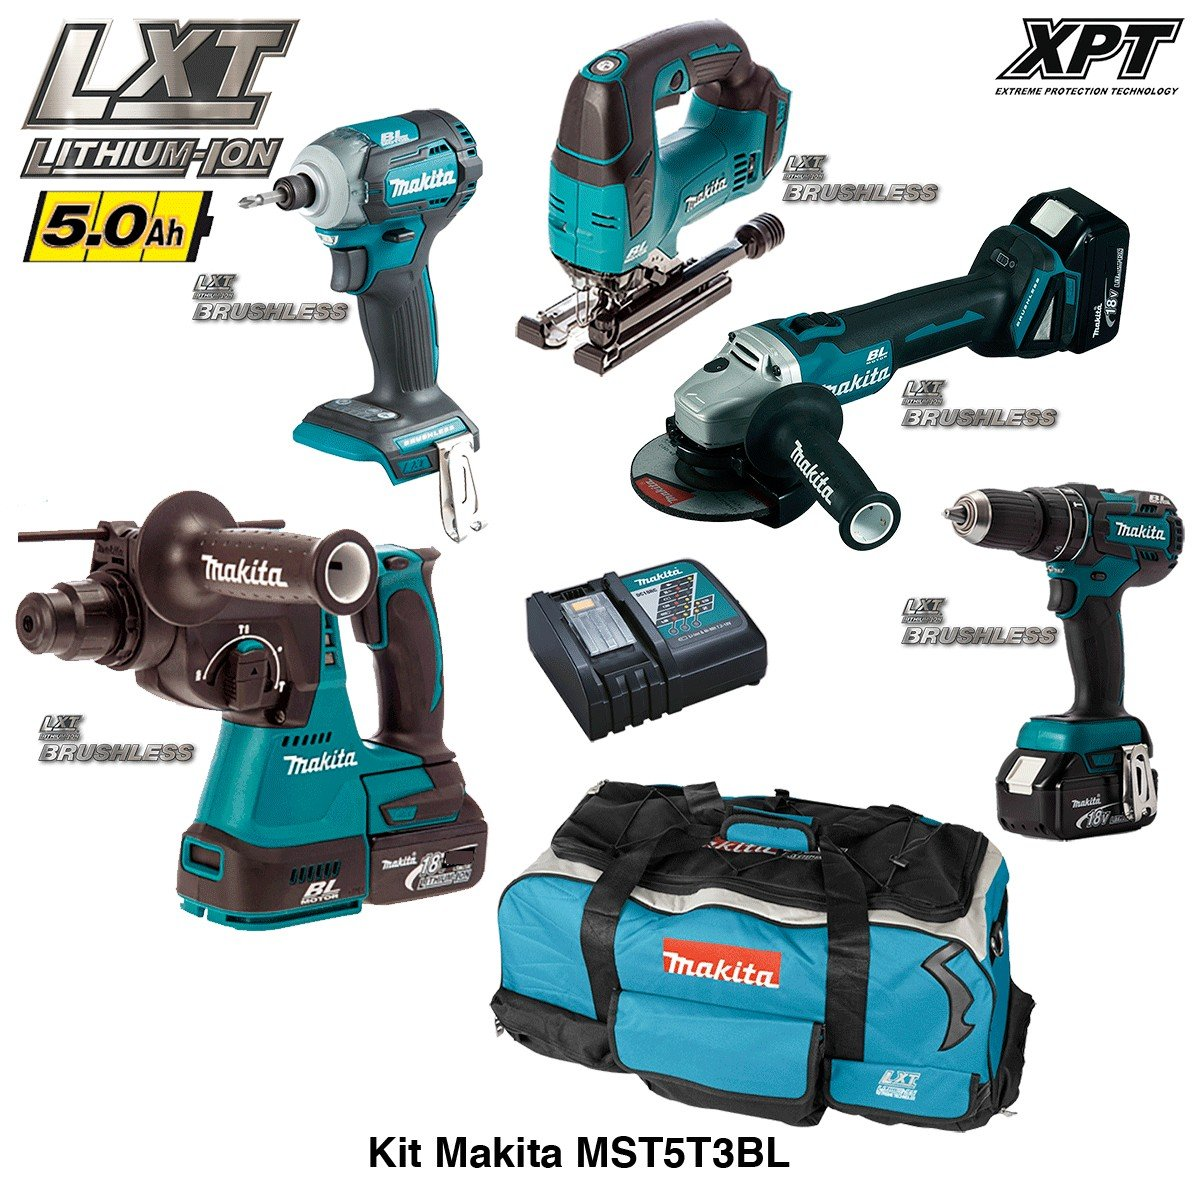 MAKITA Kit MST5T3BL